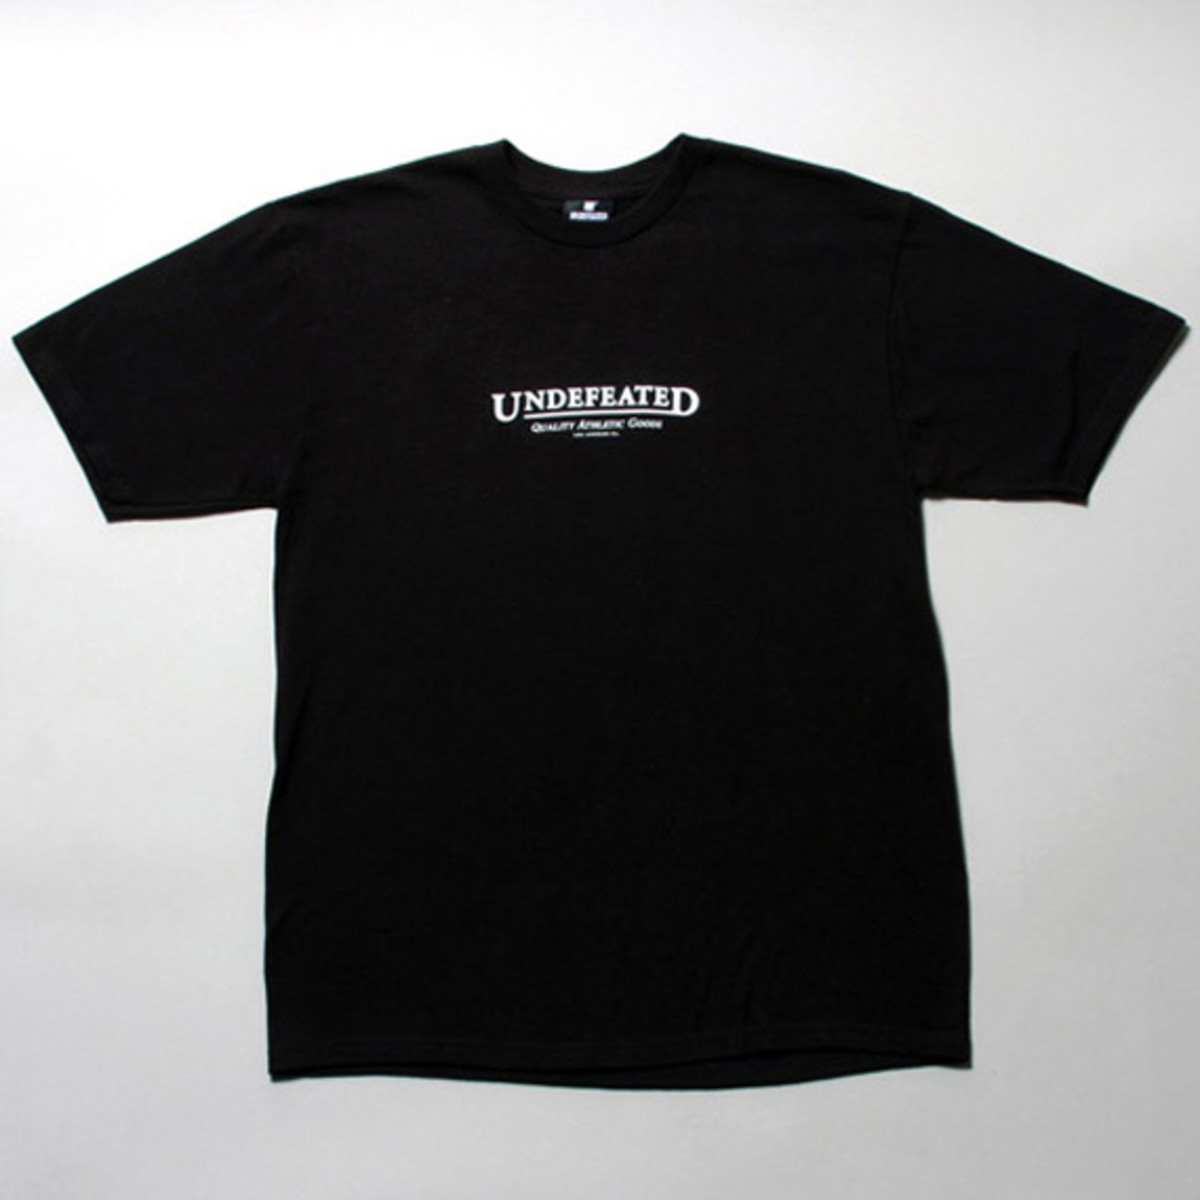 undefeated-spring-summer-2011-delivery-1-12